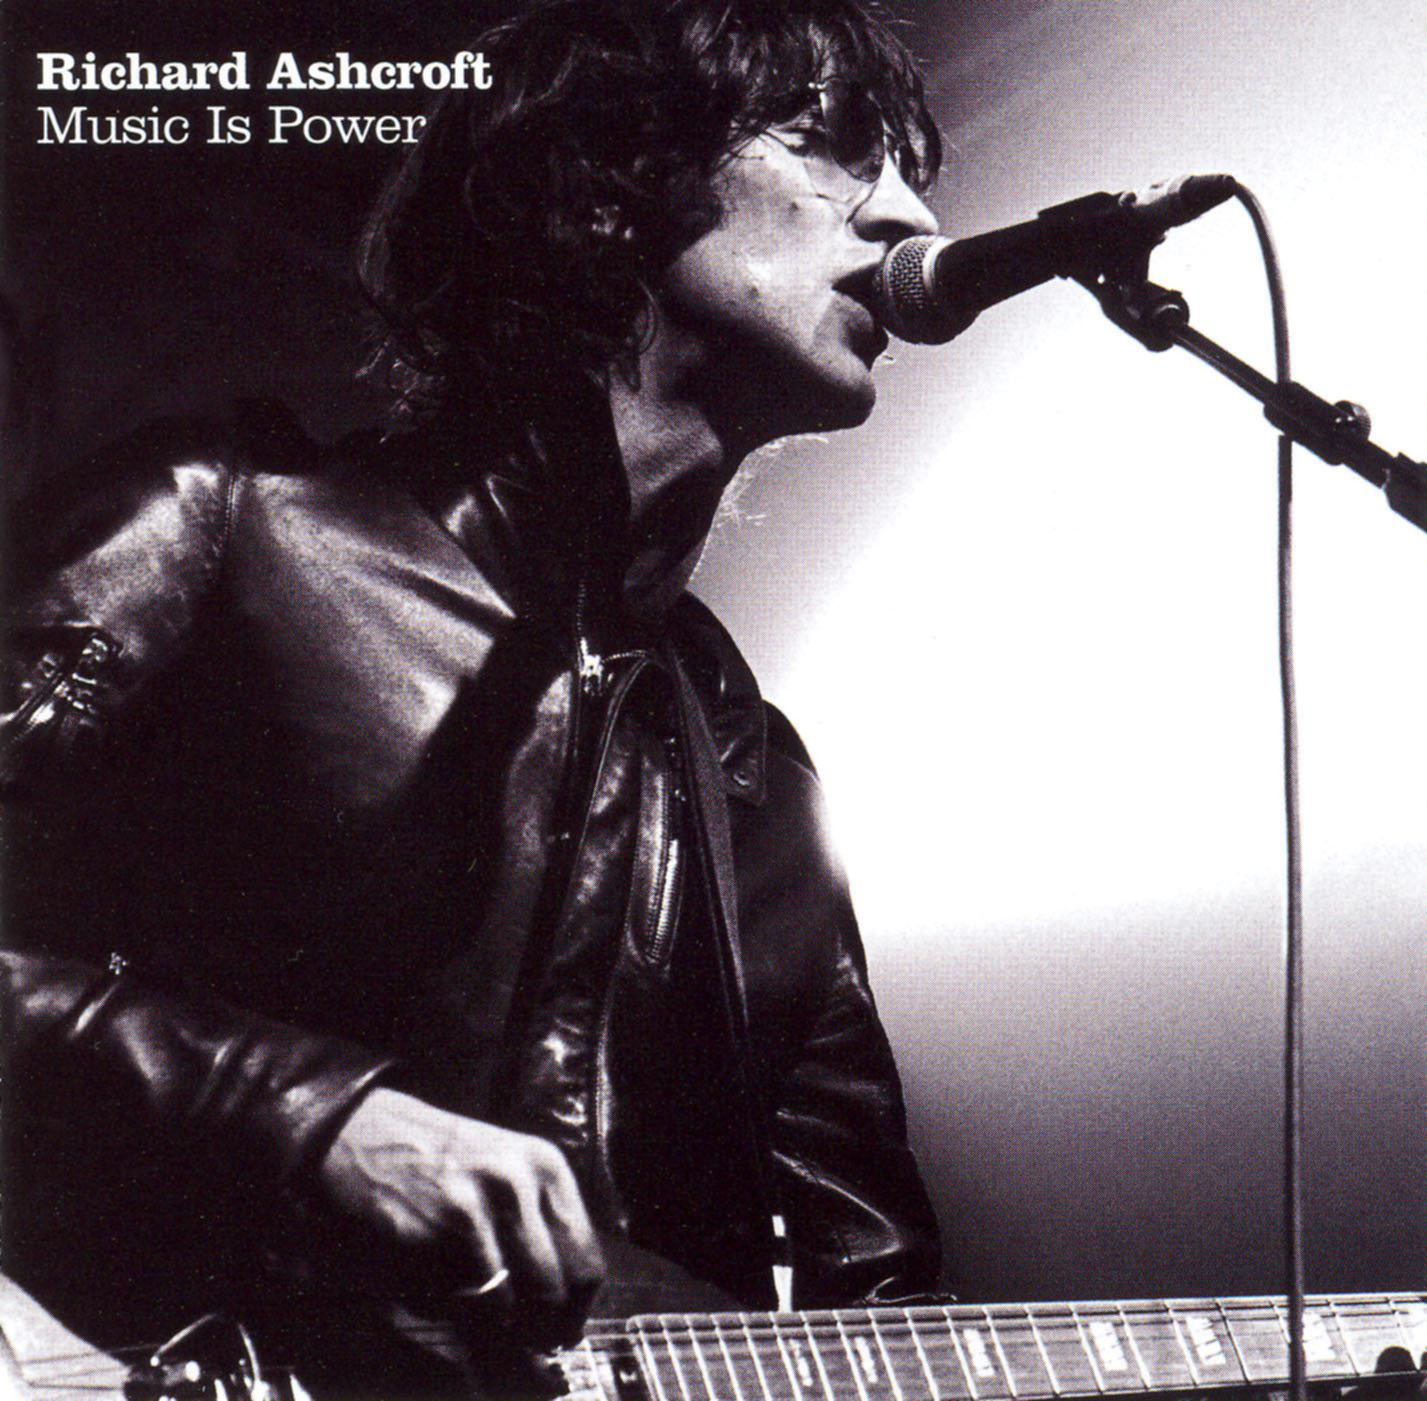 Richard Ashcroft: Music Is Power